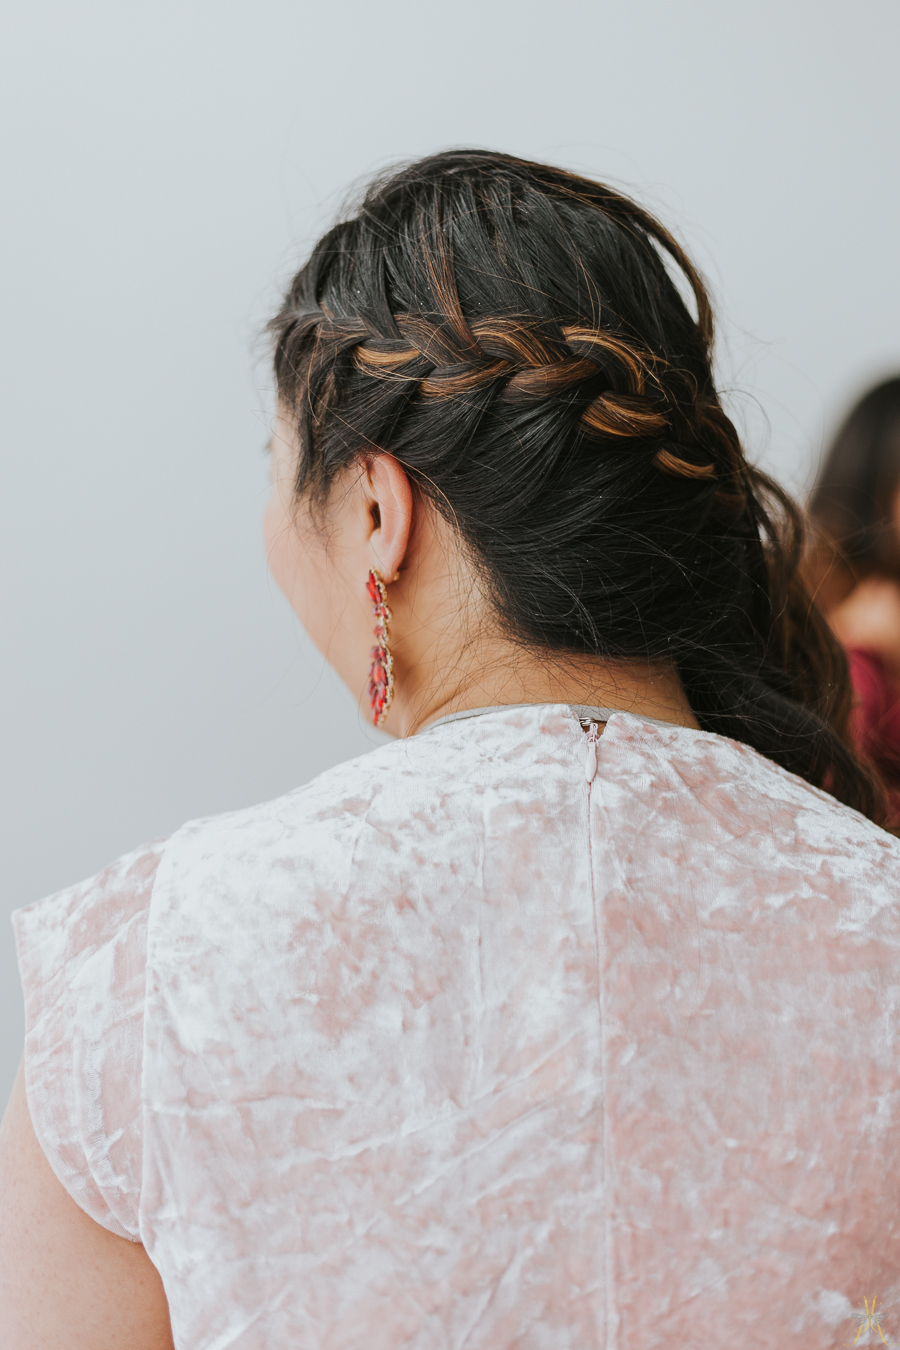 Braid by Tanglez Hair and Makeup